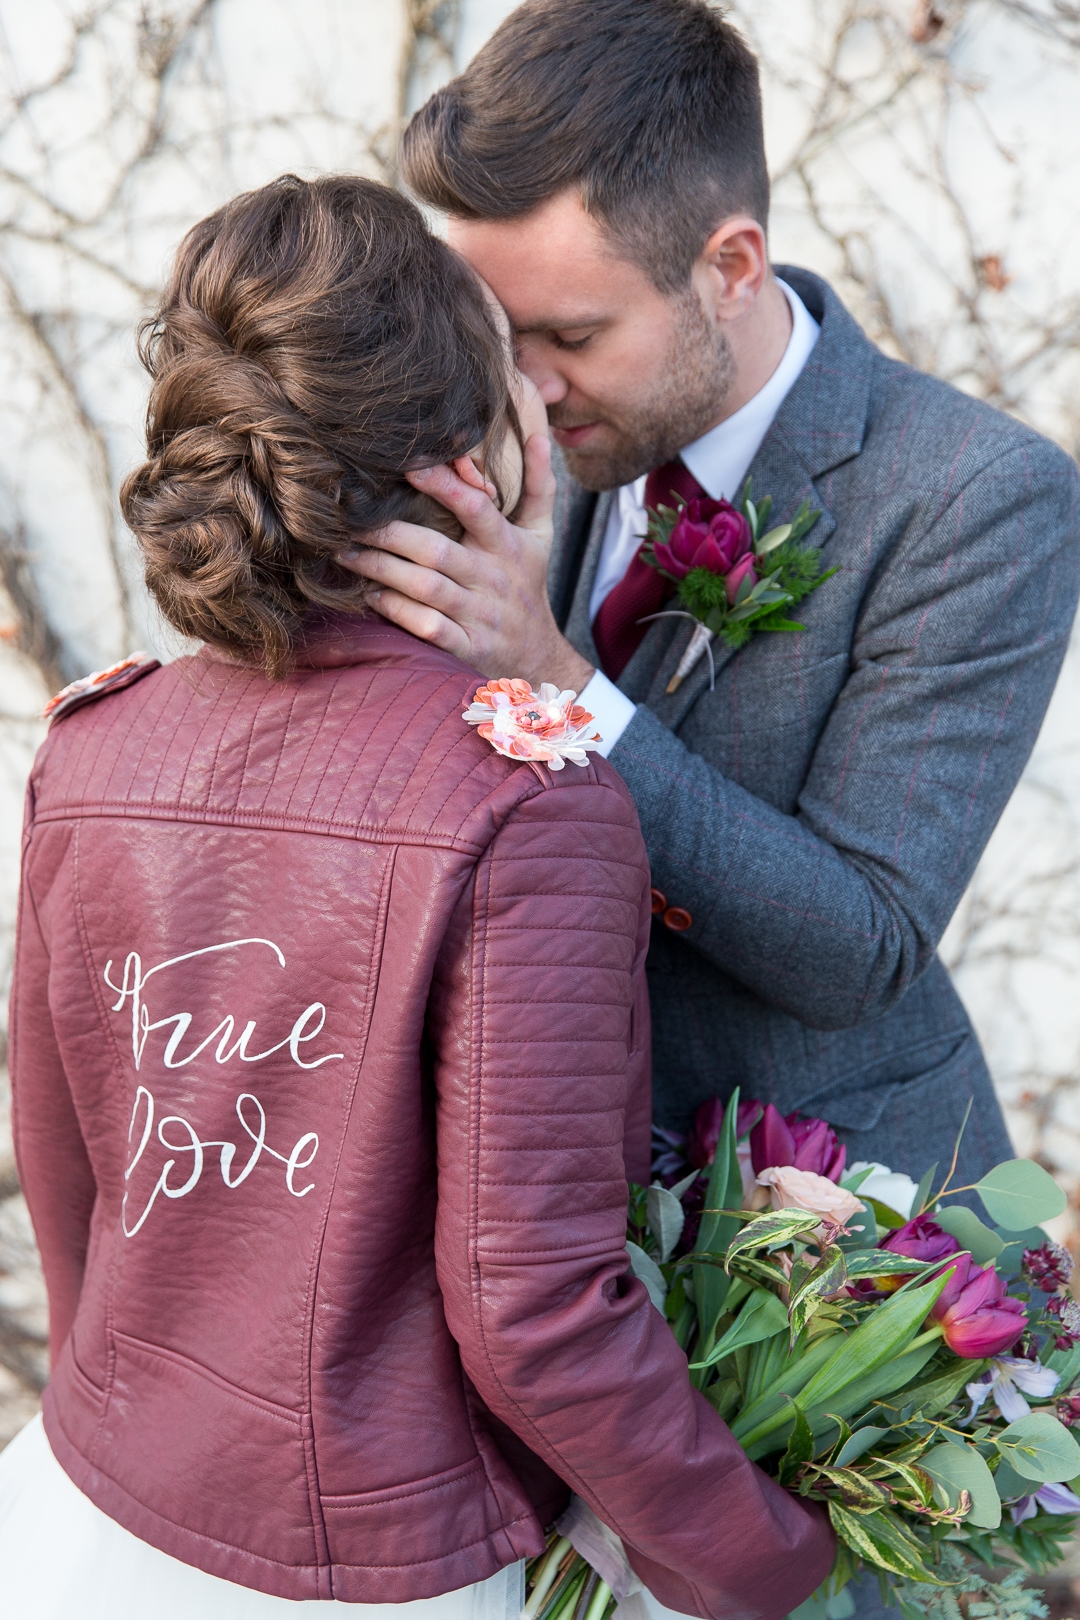 Burgundy leather jacket with True love calligraphy